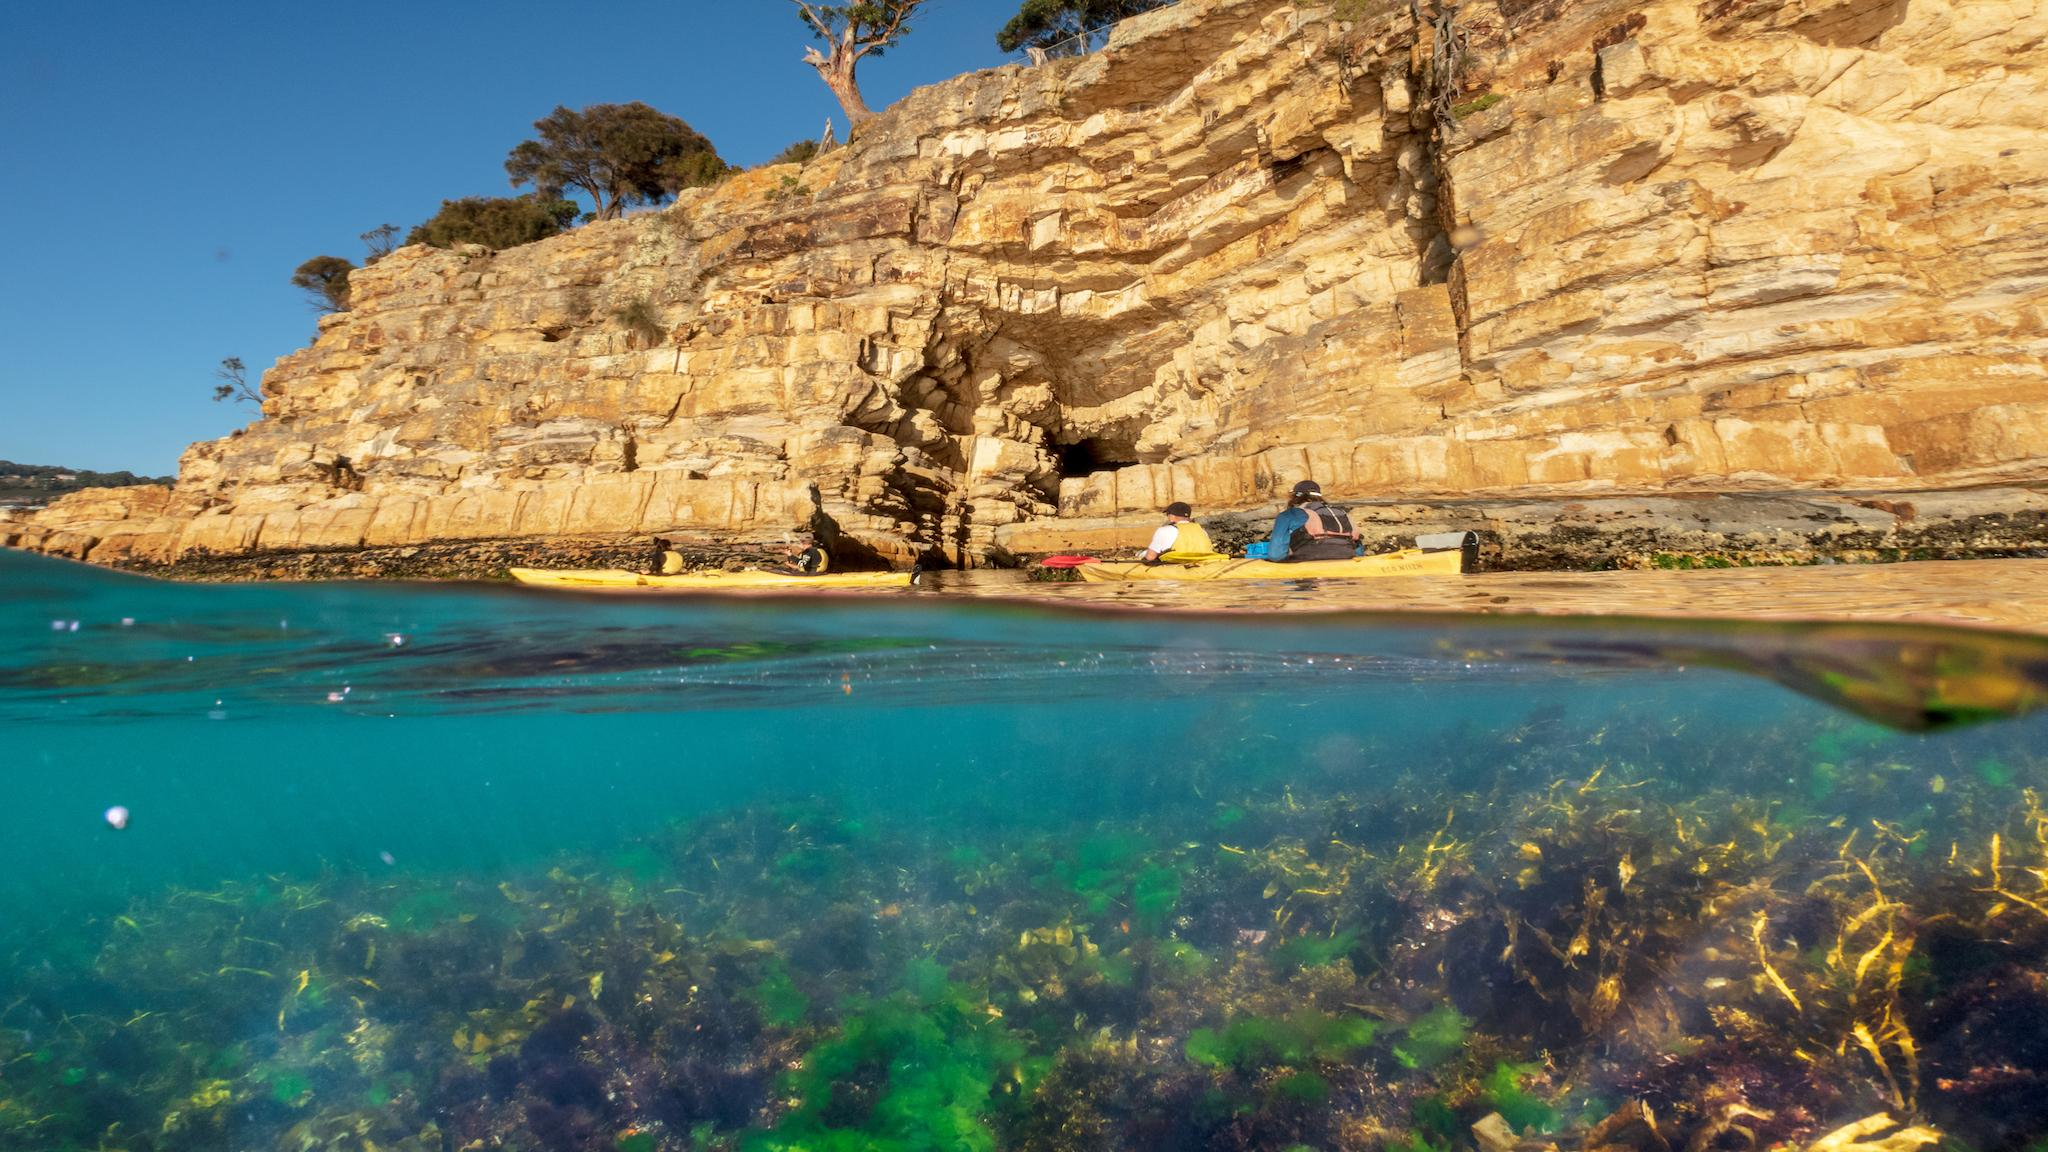 Roaring 40s Kayaking - Adventure kayaking tour along Hobart's Cliffs, Caves and Beaches